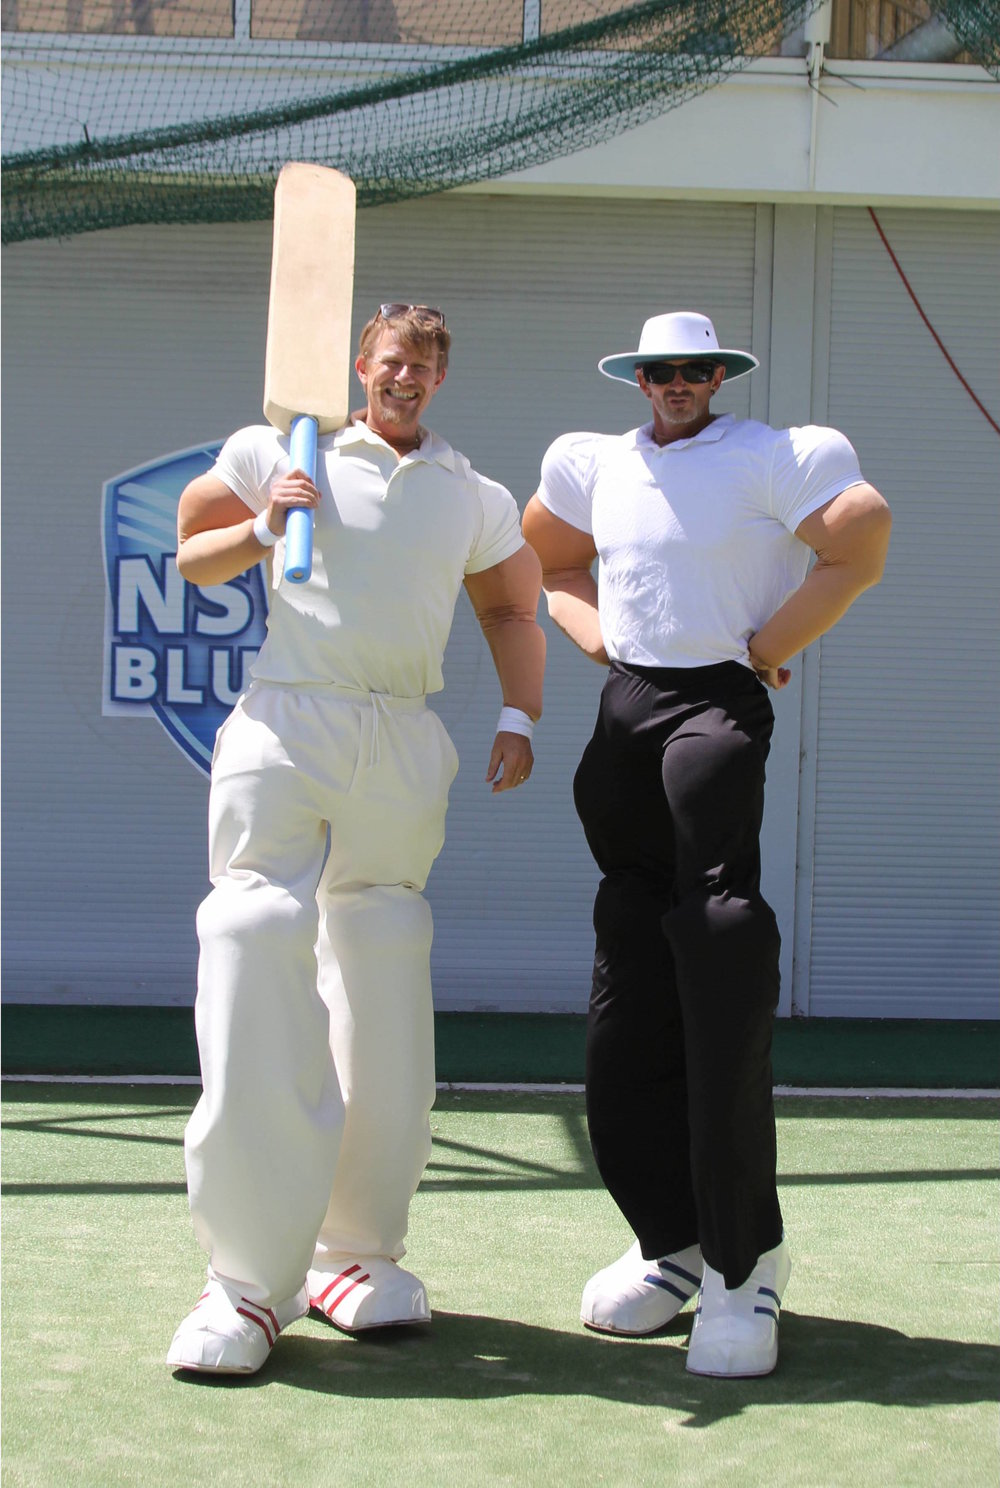 Cricketer and Umpire on Stilts copy.jpg